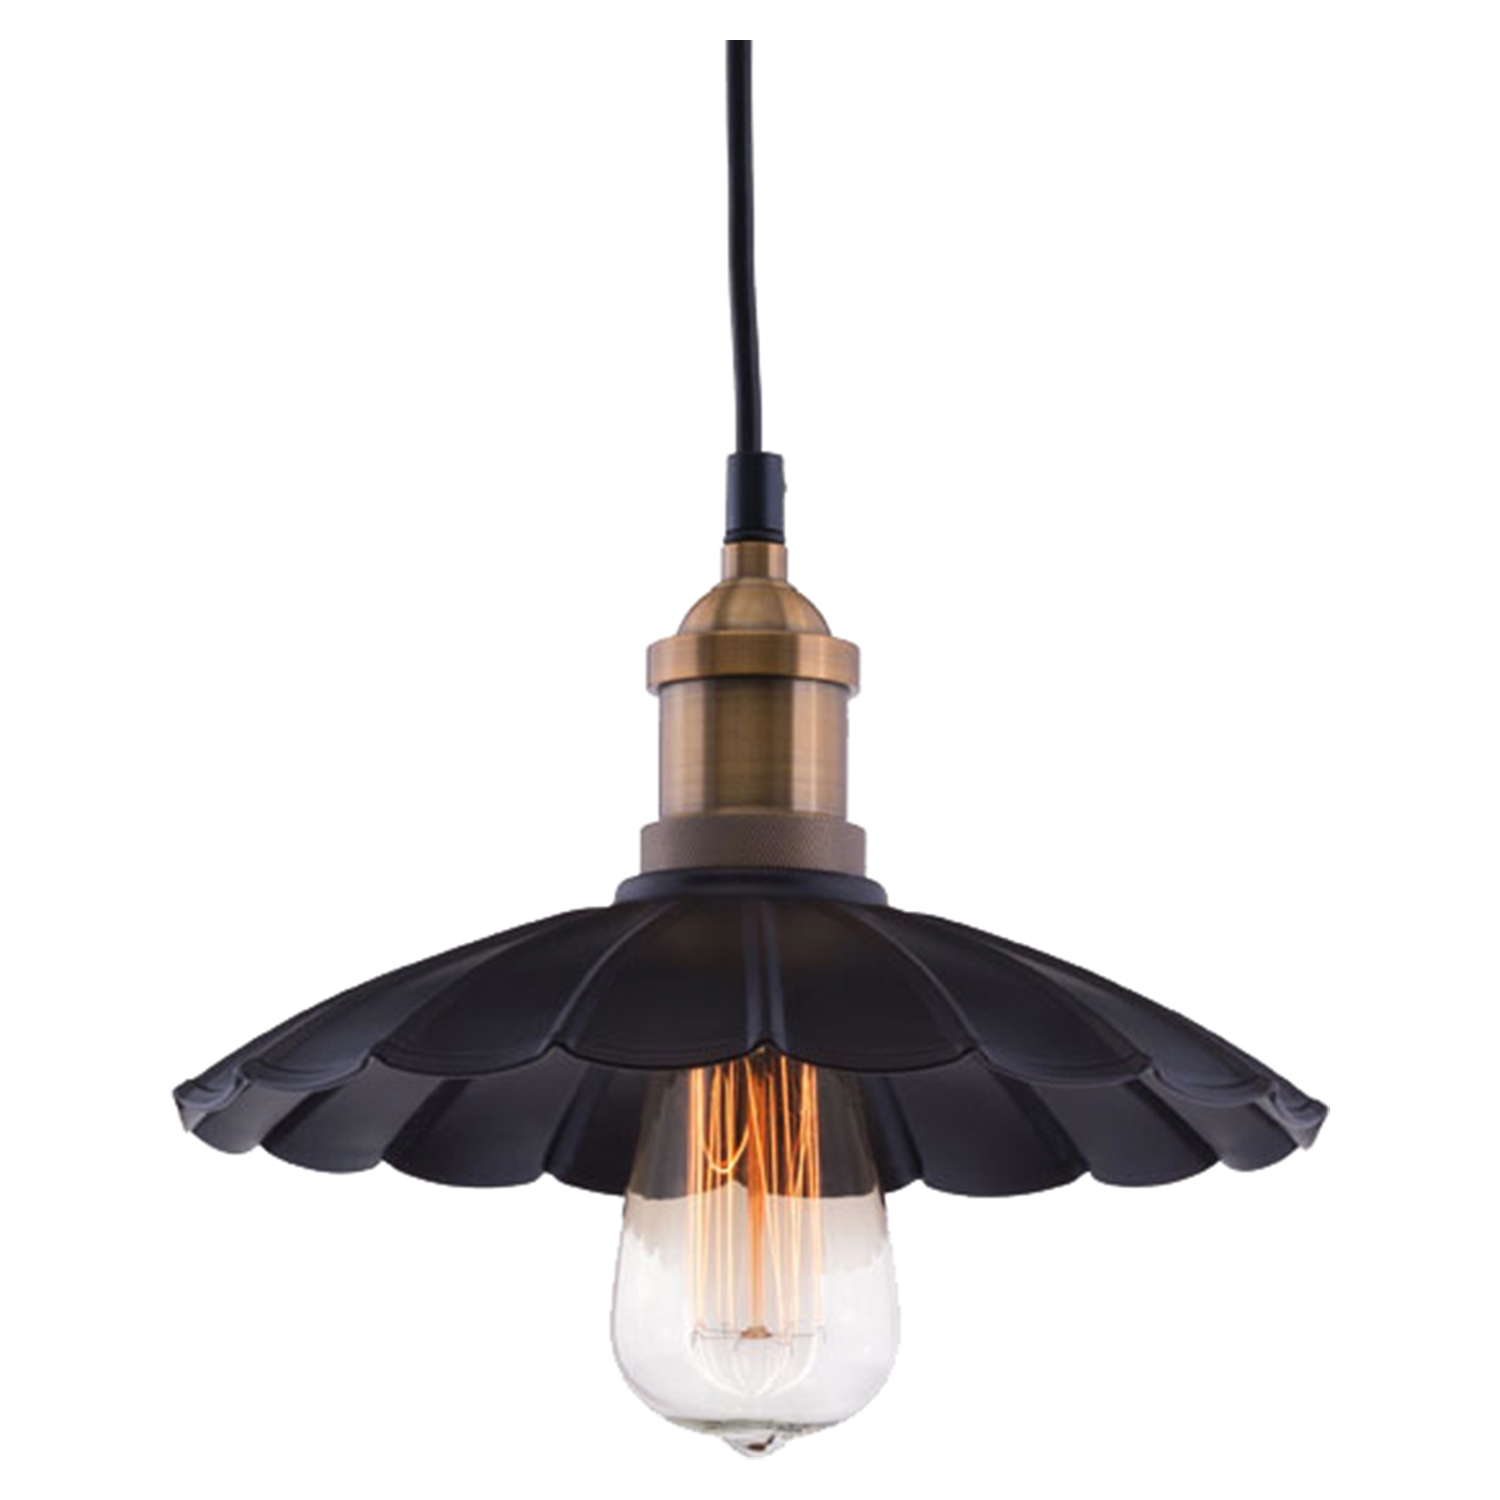 Hamilton Ceiling Lamp - Antique Black, Copper - ZM-98411